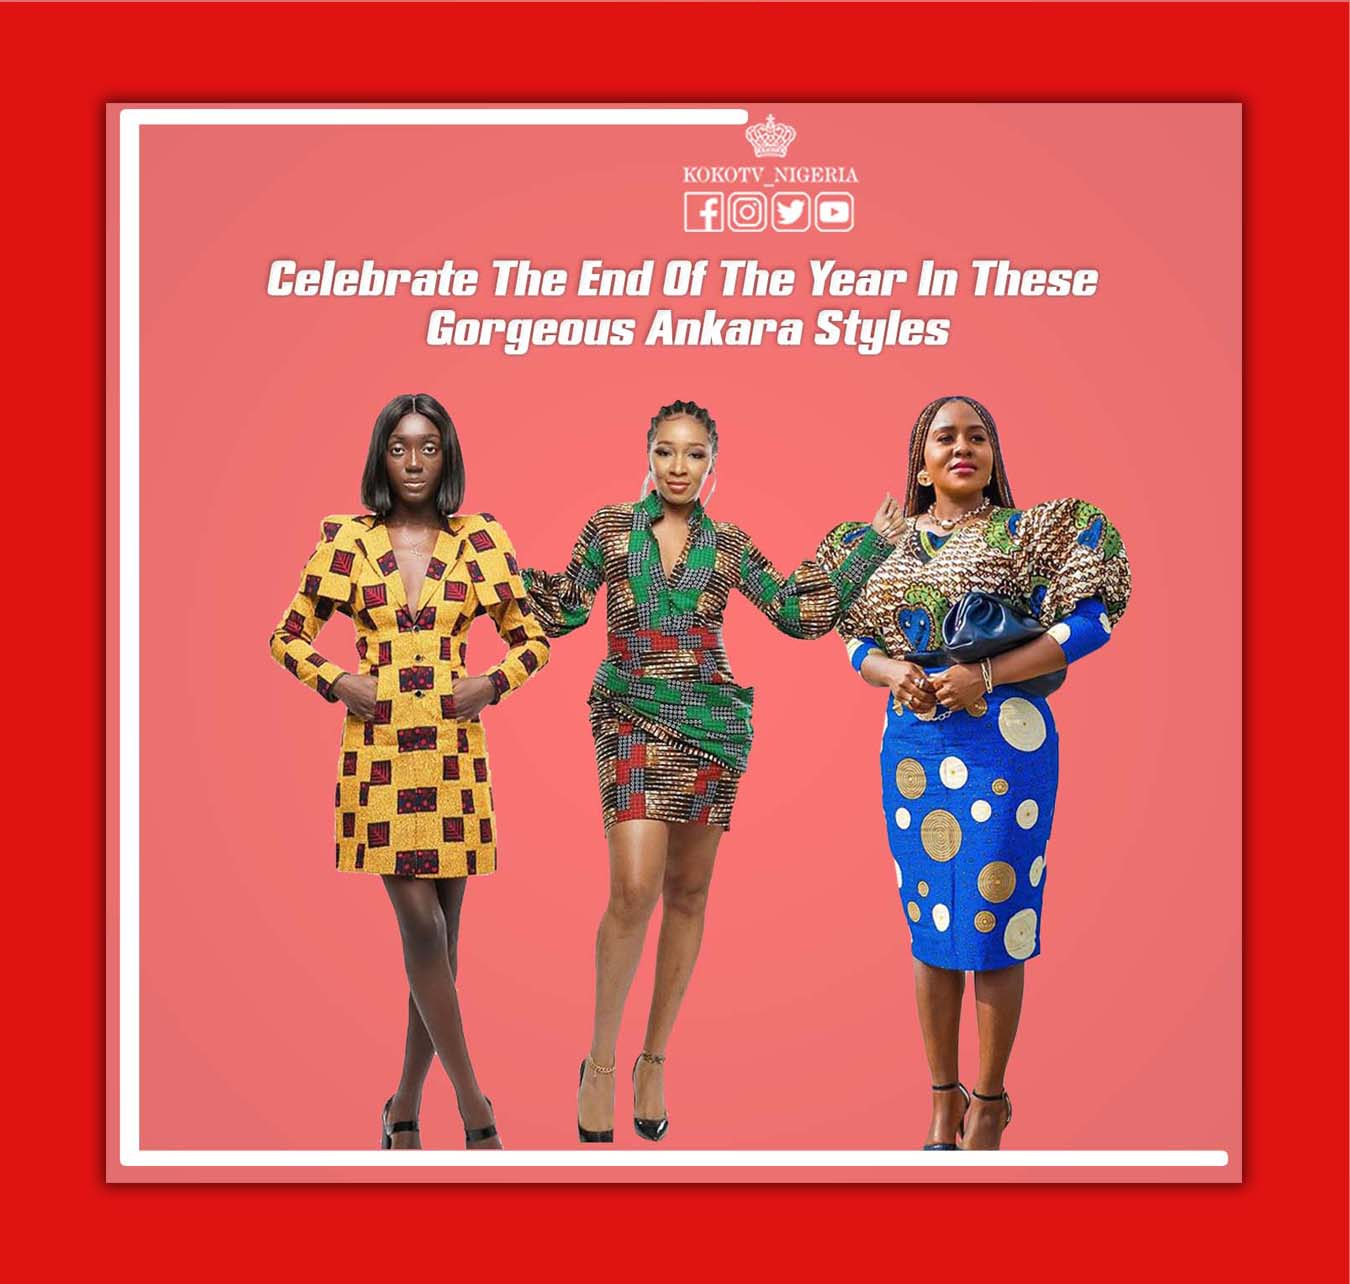 Celebrate The End Of The Year In These Gorgeous Ankara Styles